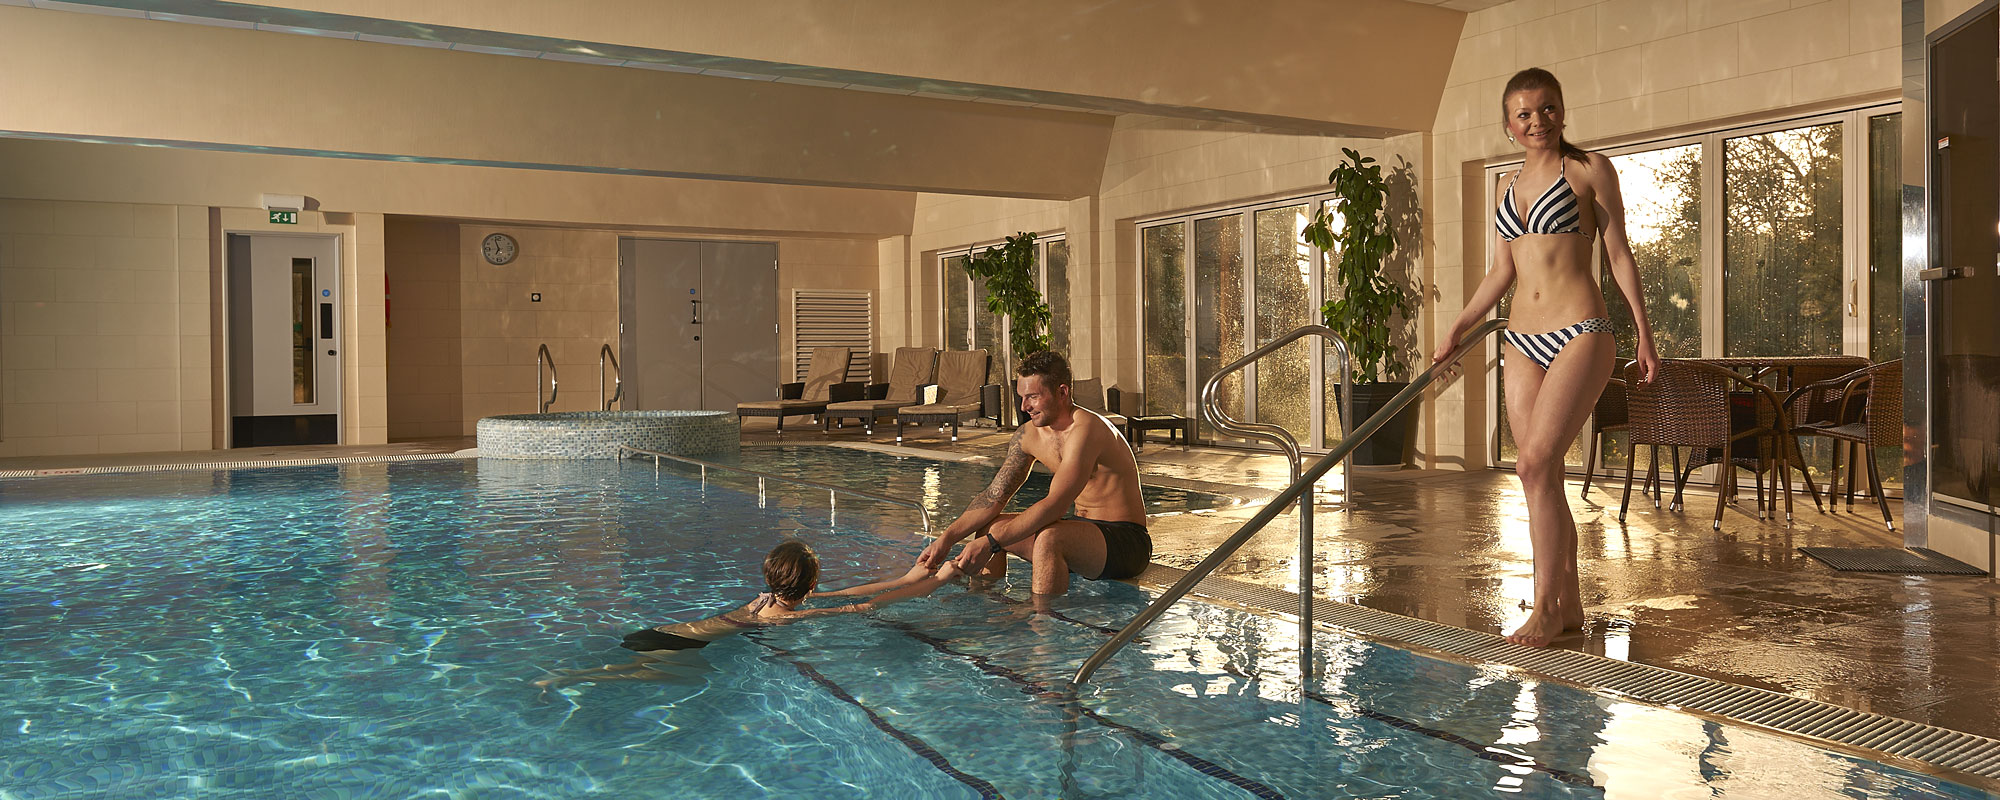 Hotel health suite - pool, steam room, sauna and gym.